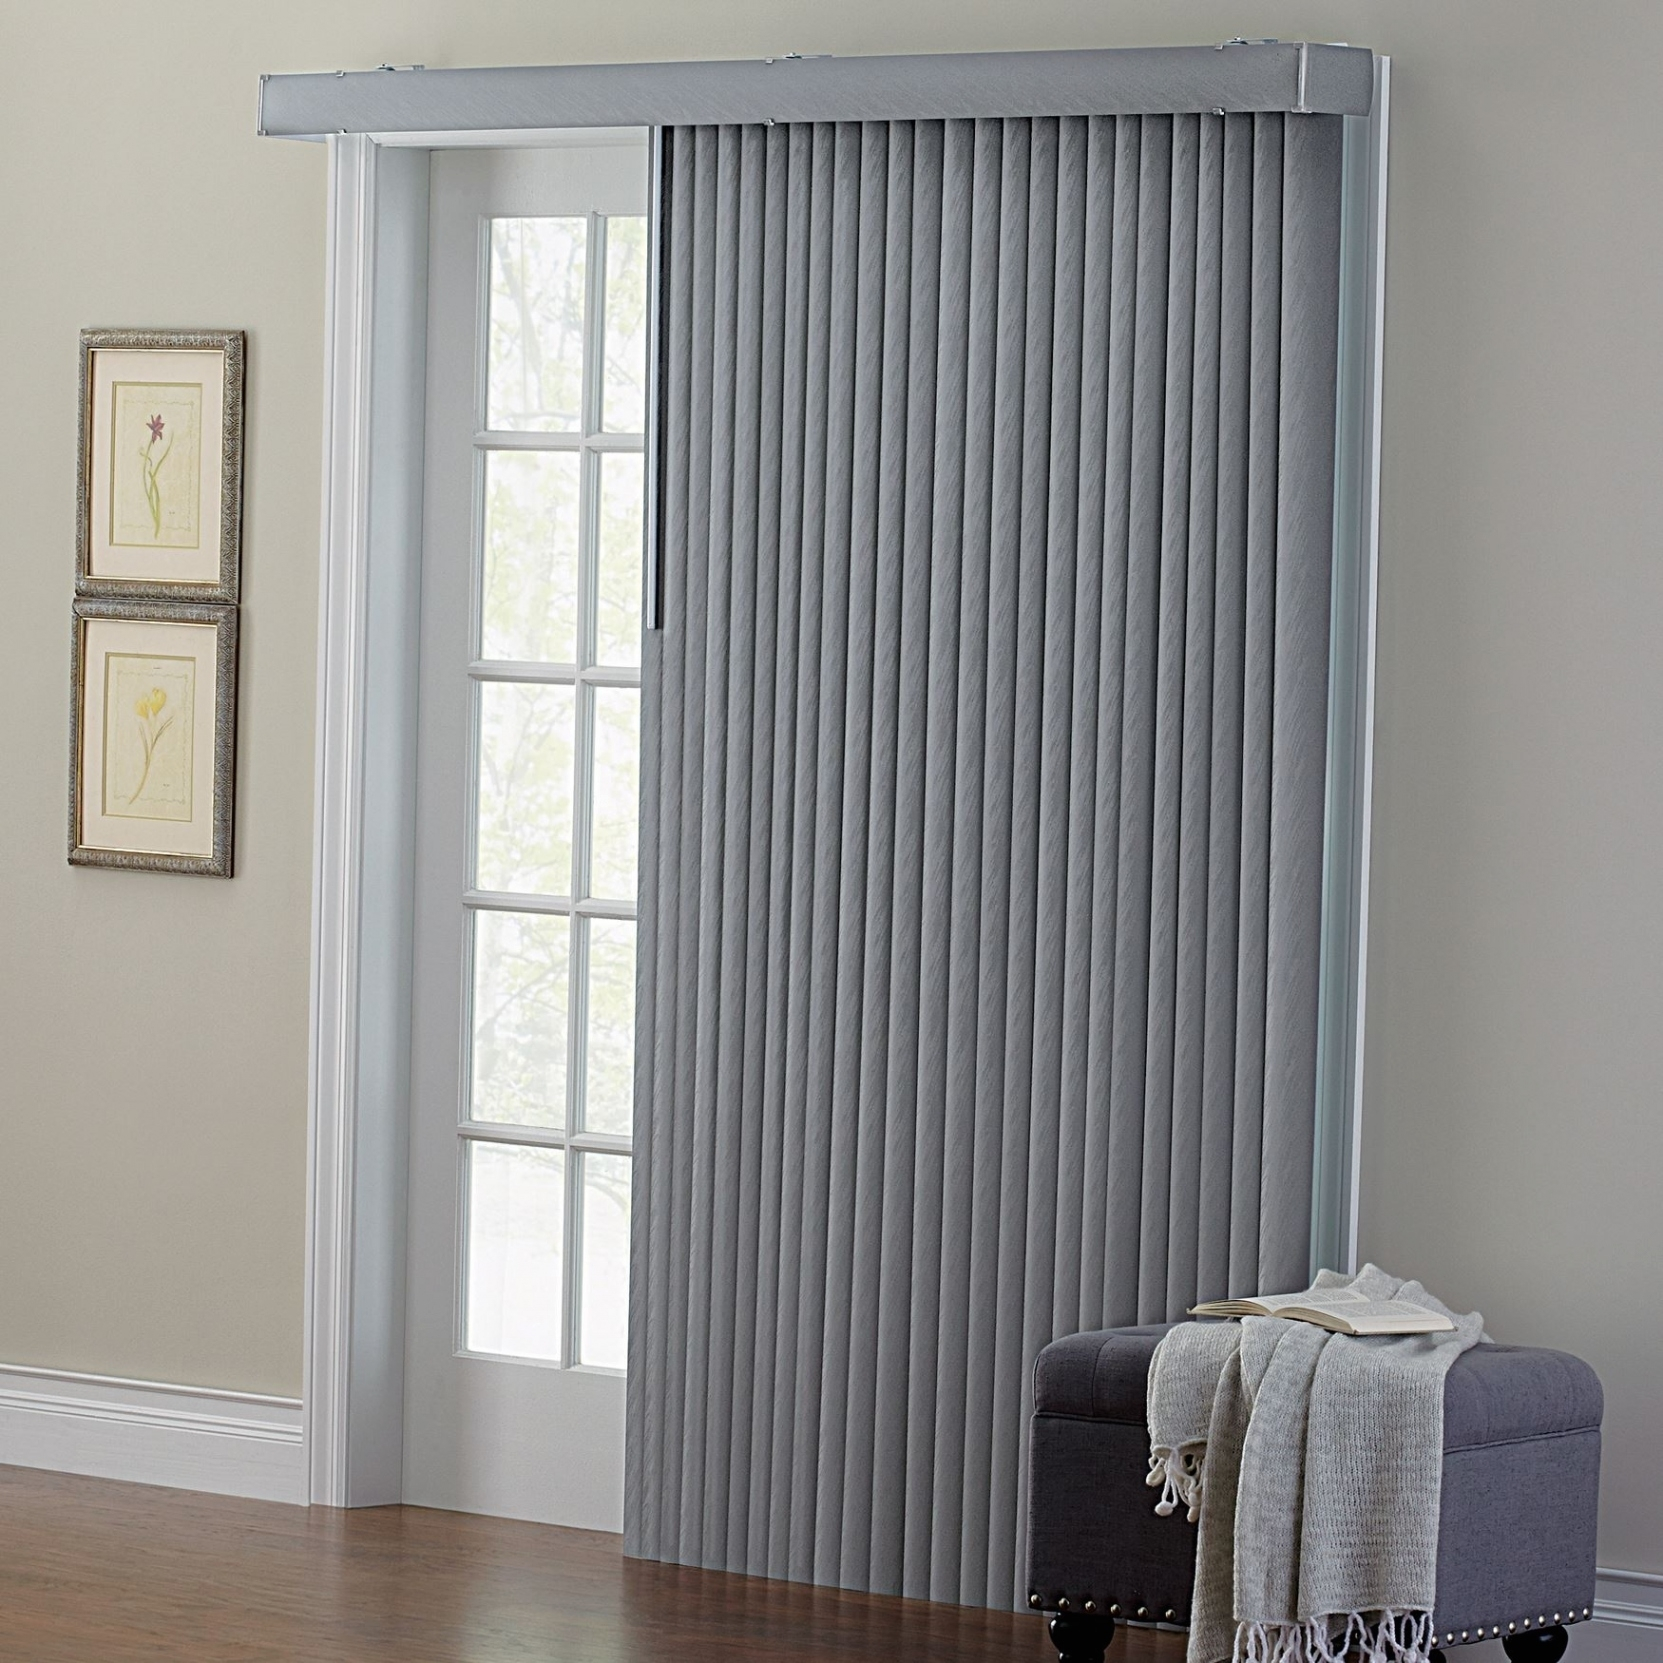 Fabric Vertical Blinds For Sliding Glass Doors1663 X 1663